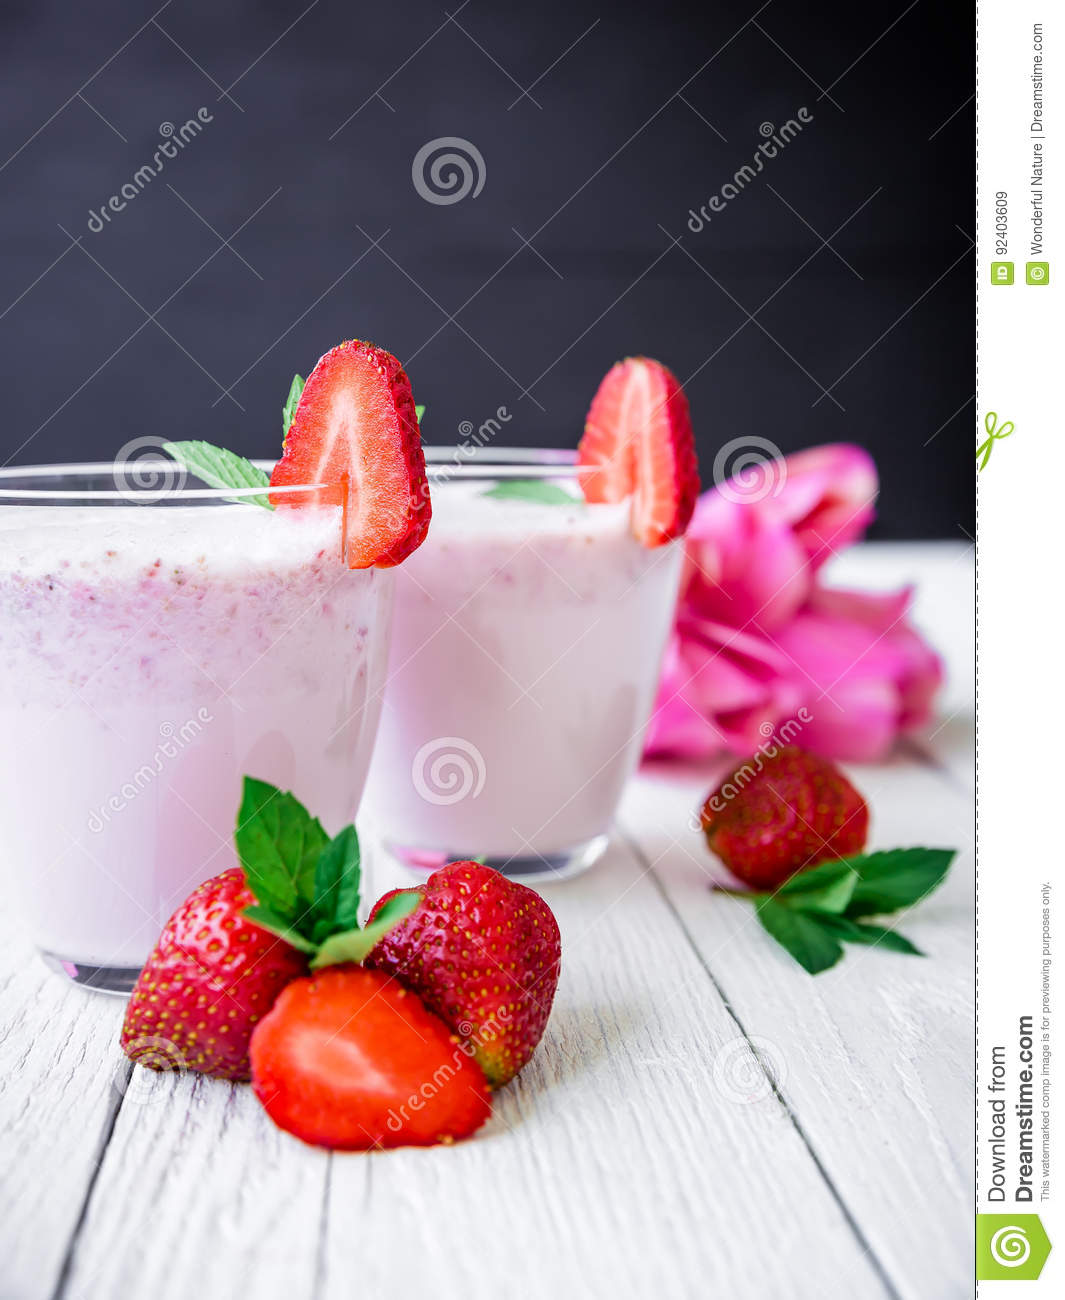 Strawberry smoothie with berries and pink flowers on white wood download strawberry smoothie with berries and pink flowers on white wood table and dark background mightylinksfo